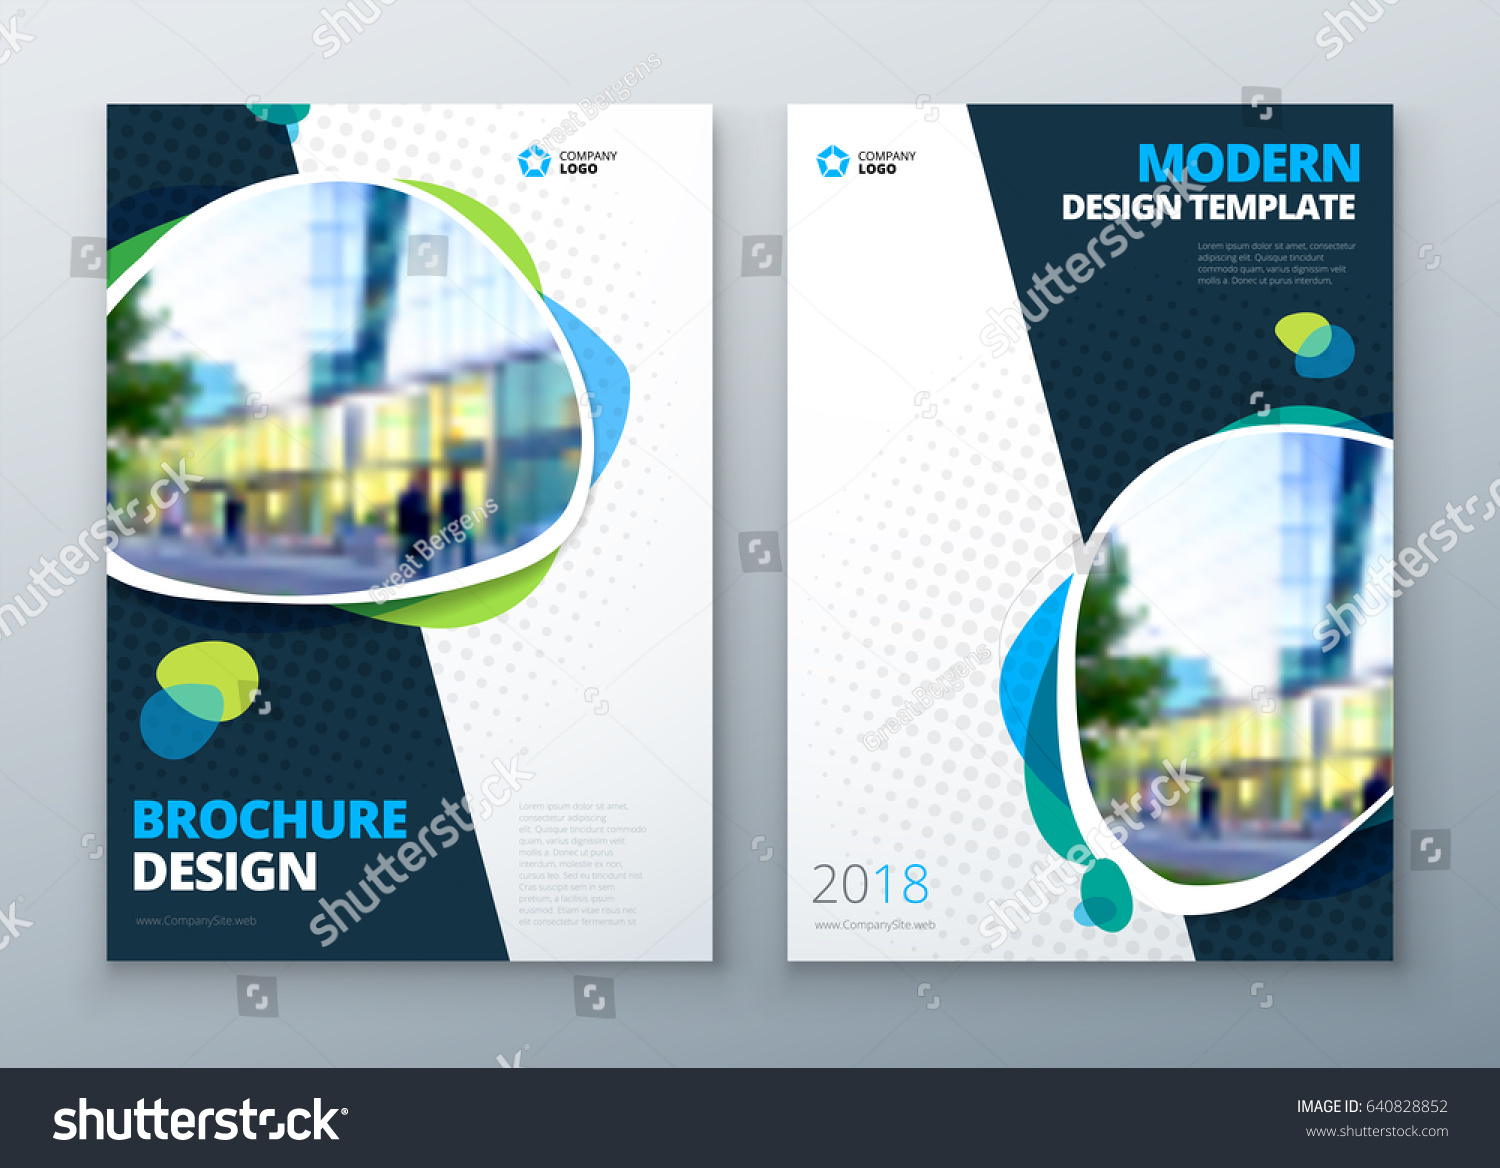 Brochure Template Layout Design Corporate Business Stock ...